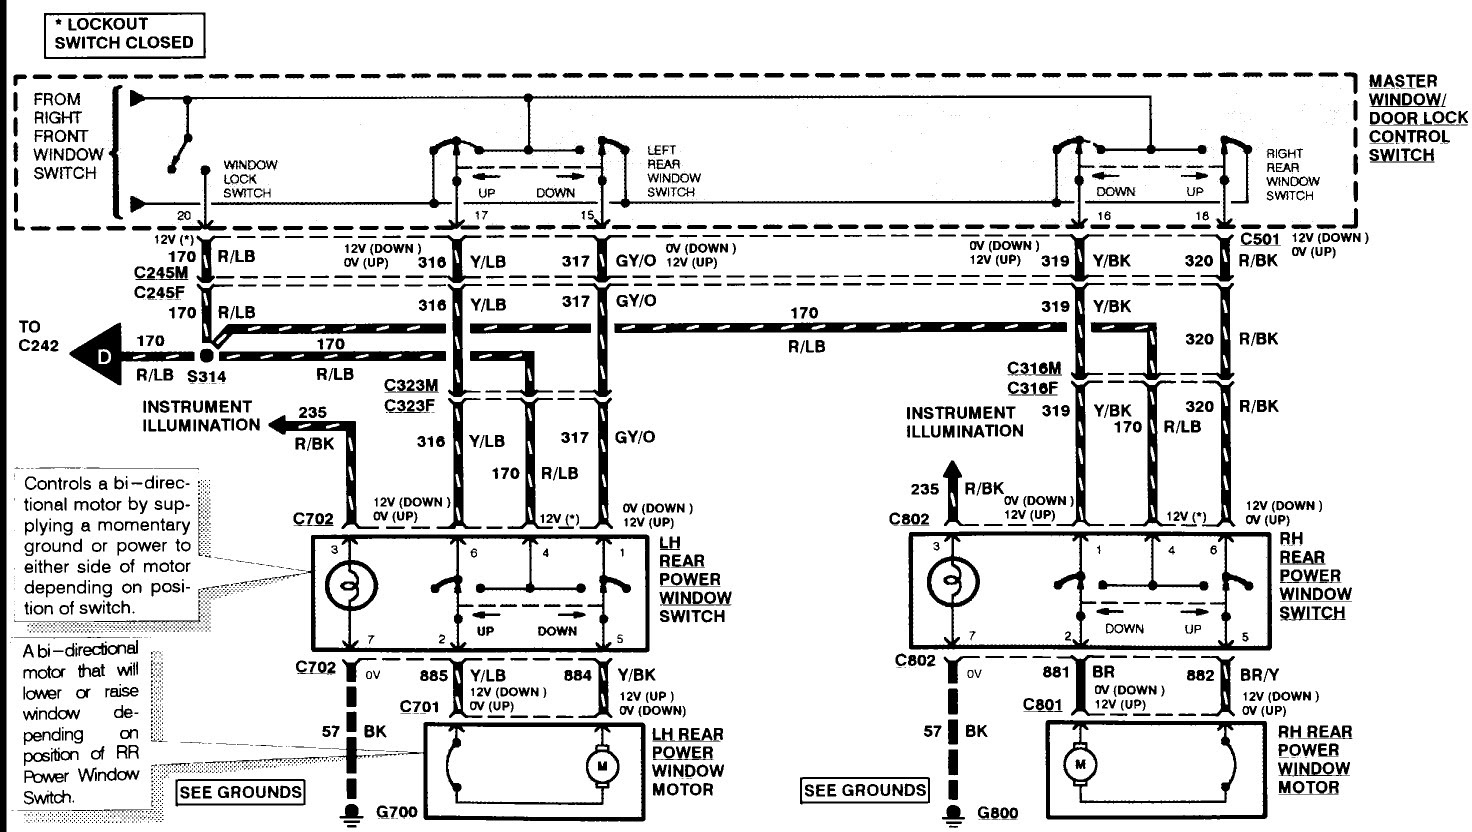 Ford Truck 150 Wiring Diagram 2002 For Window Wiring Diagram